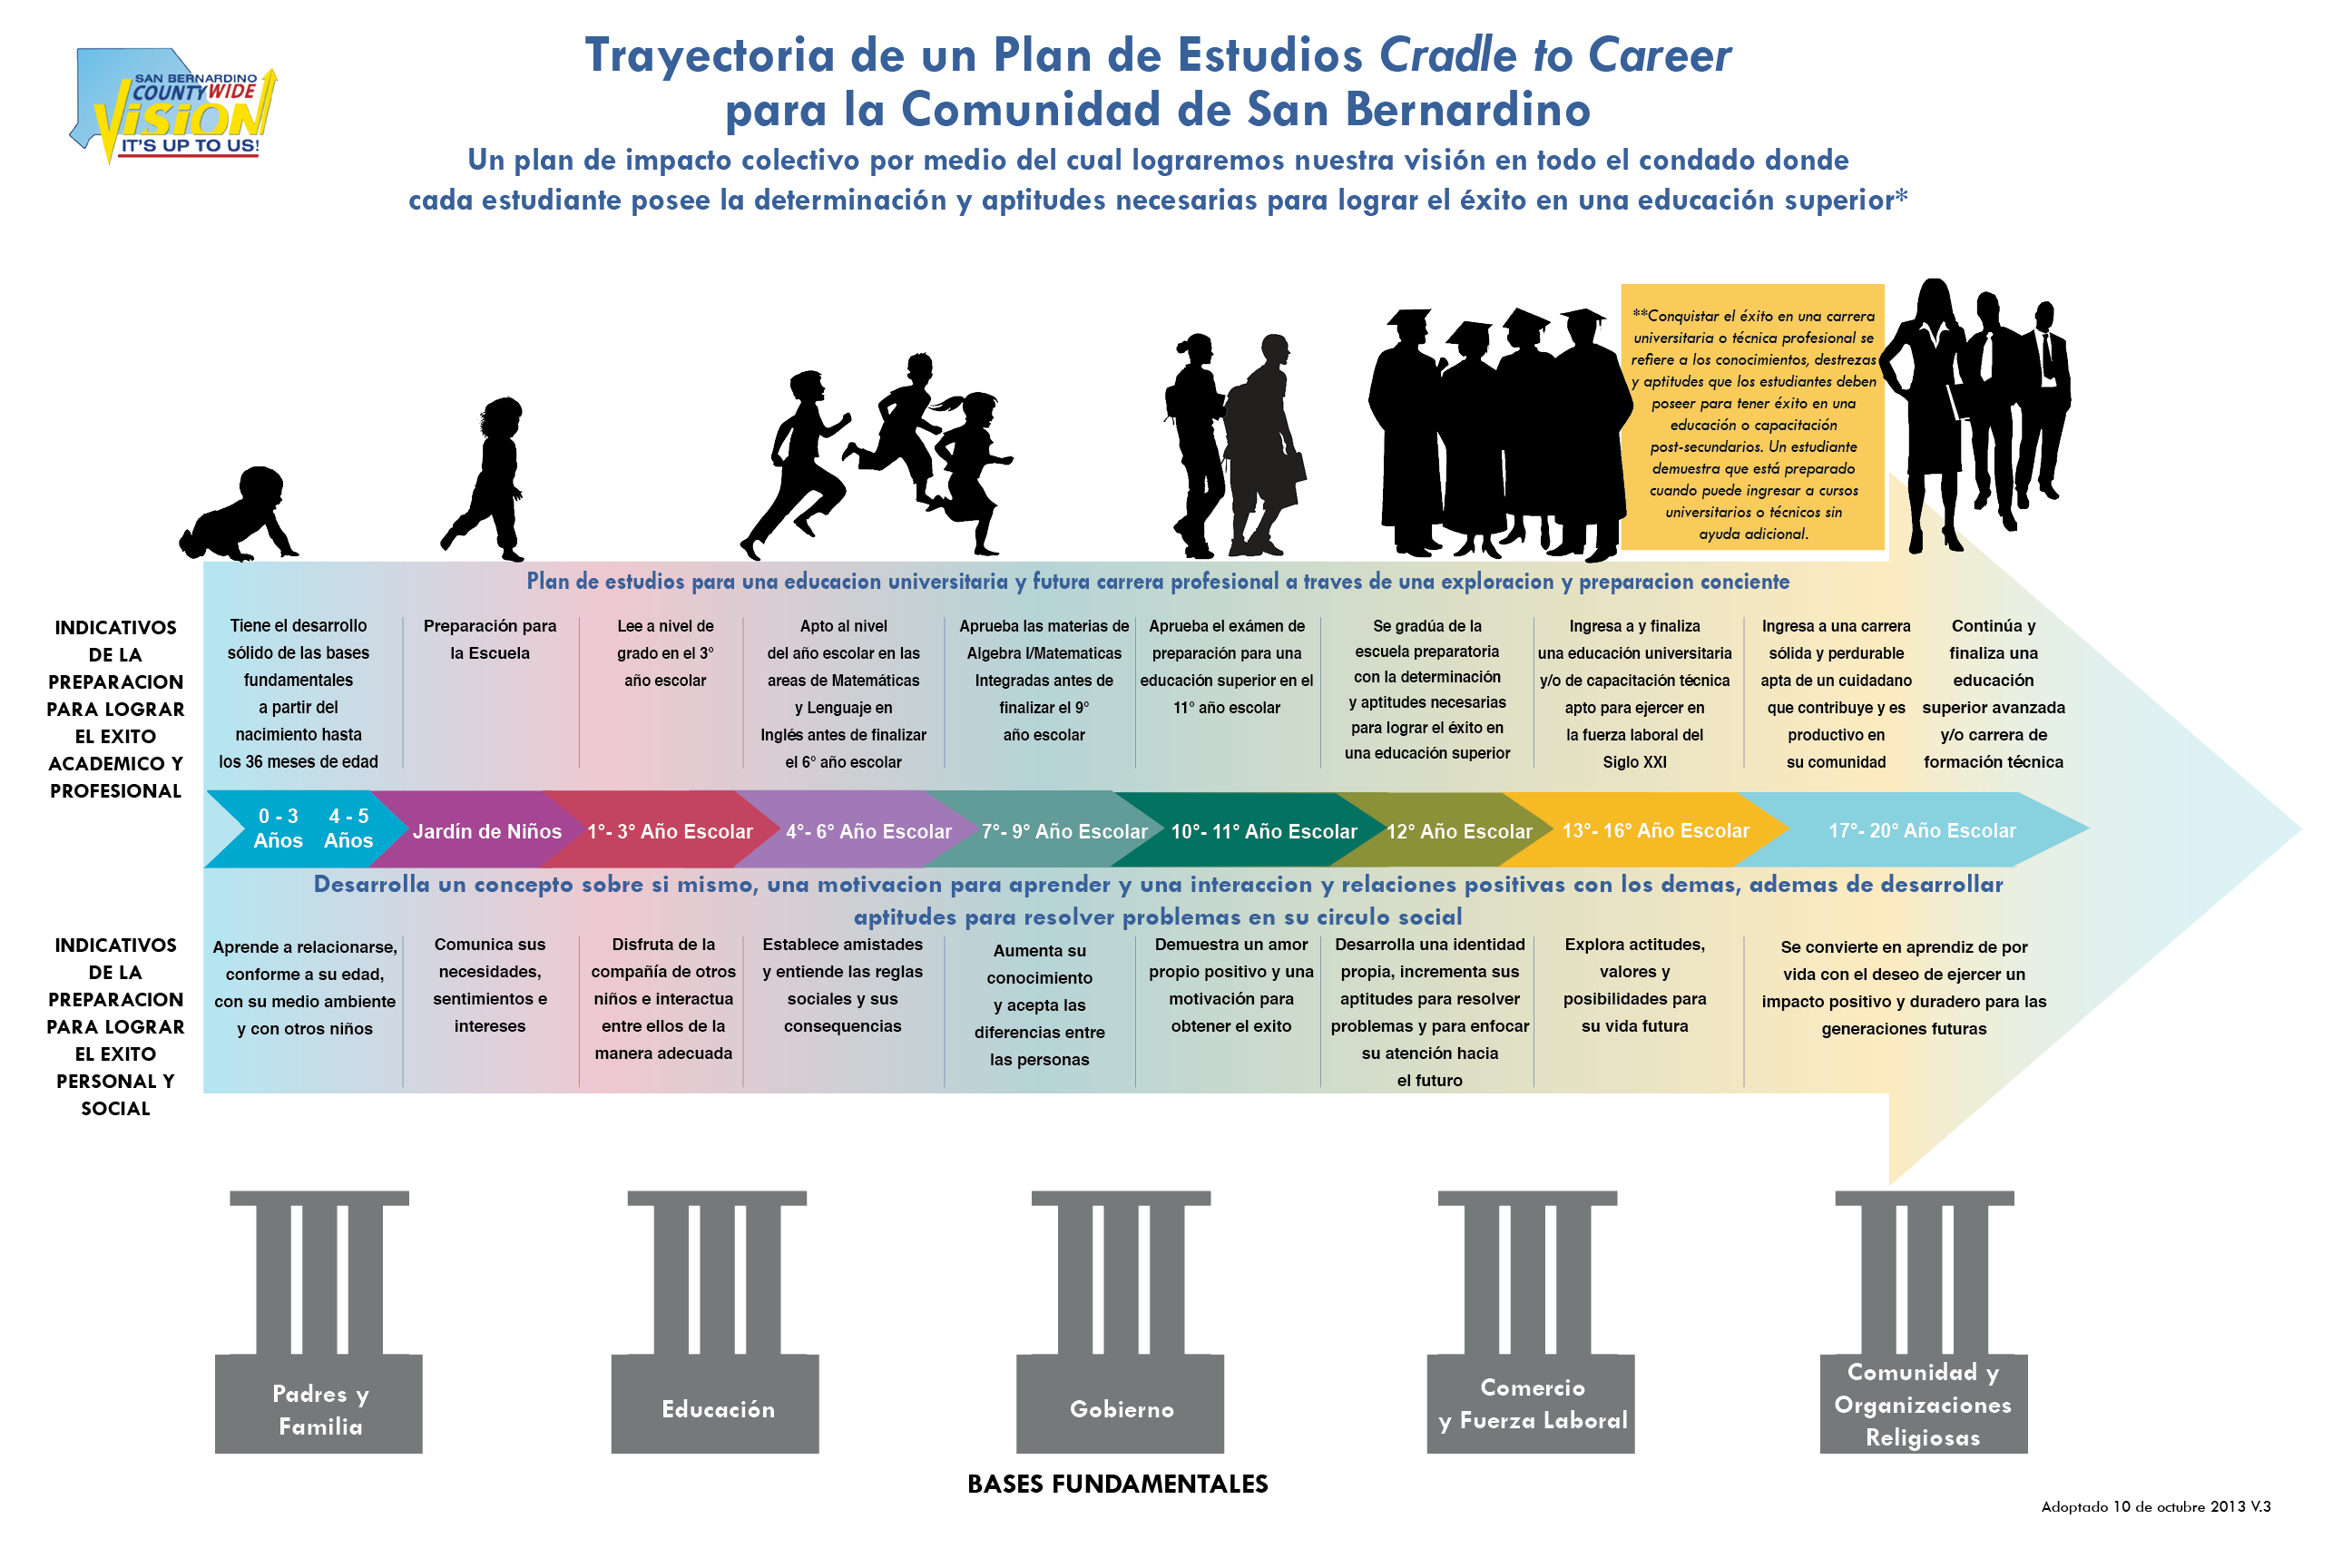 cradle to career roadmap